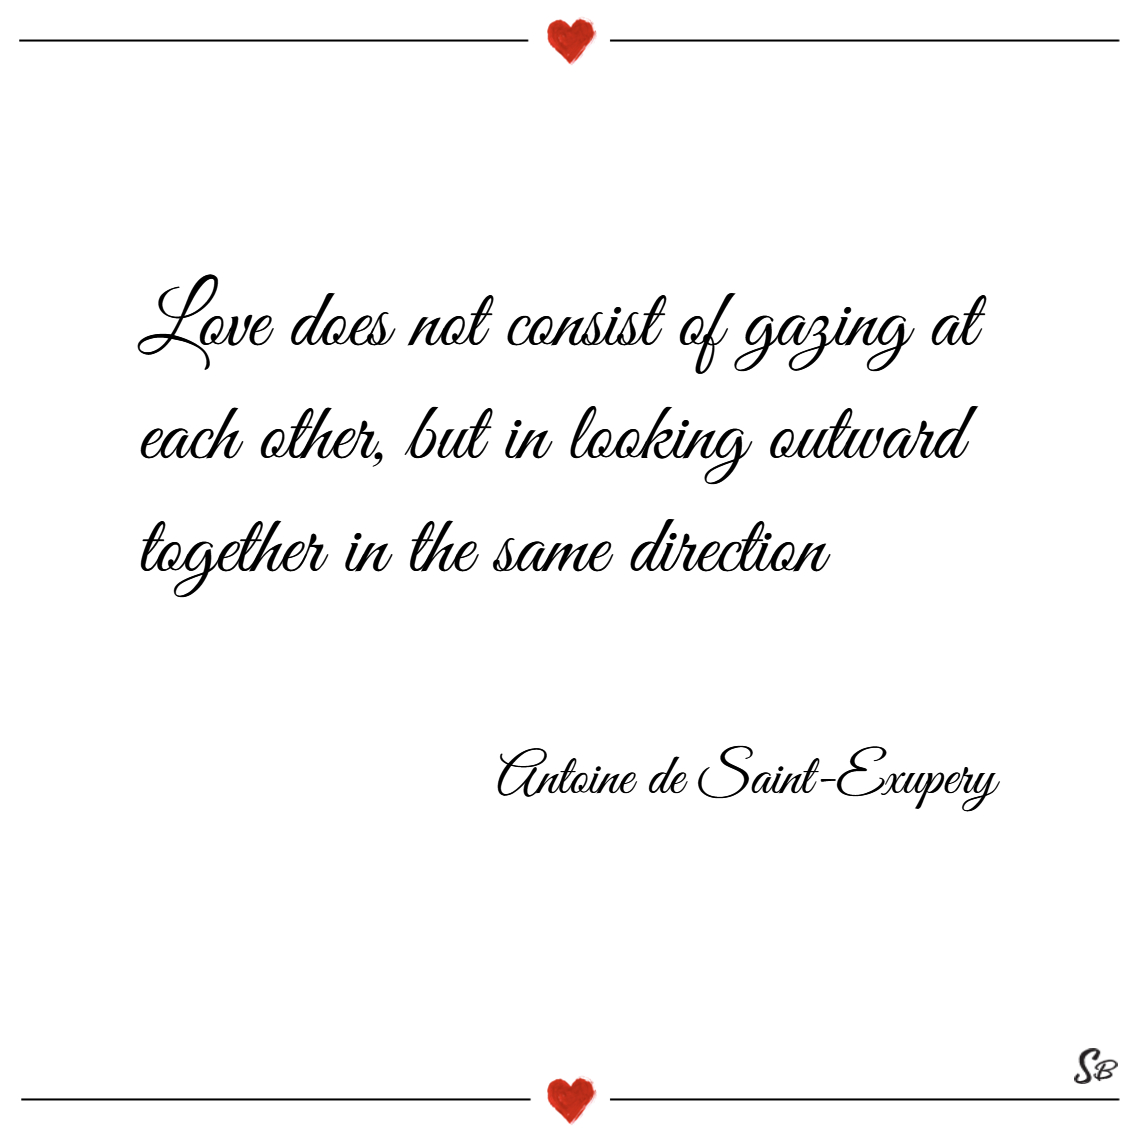 Love does not consist of gazing at each other, but